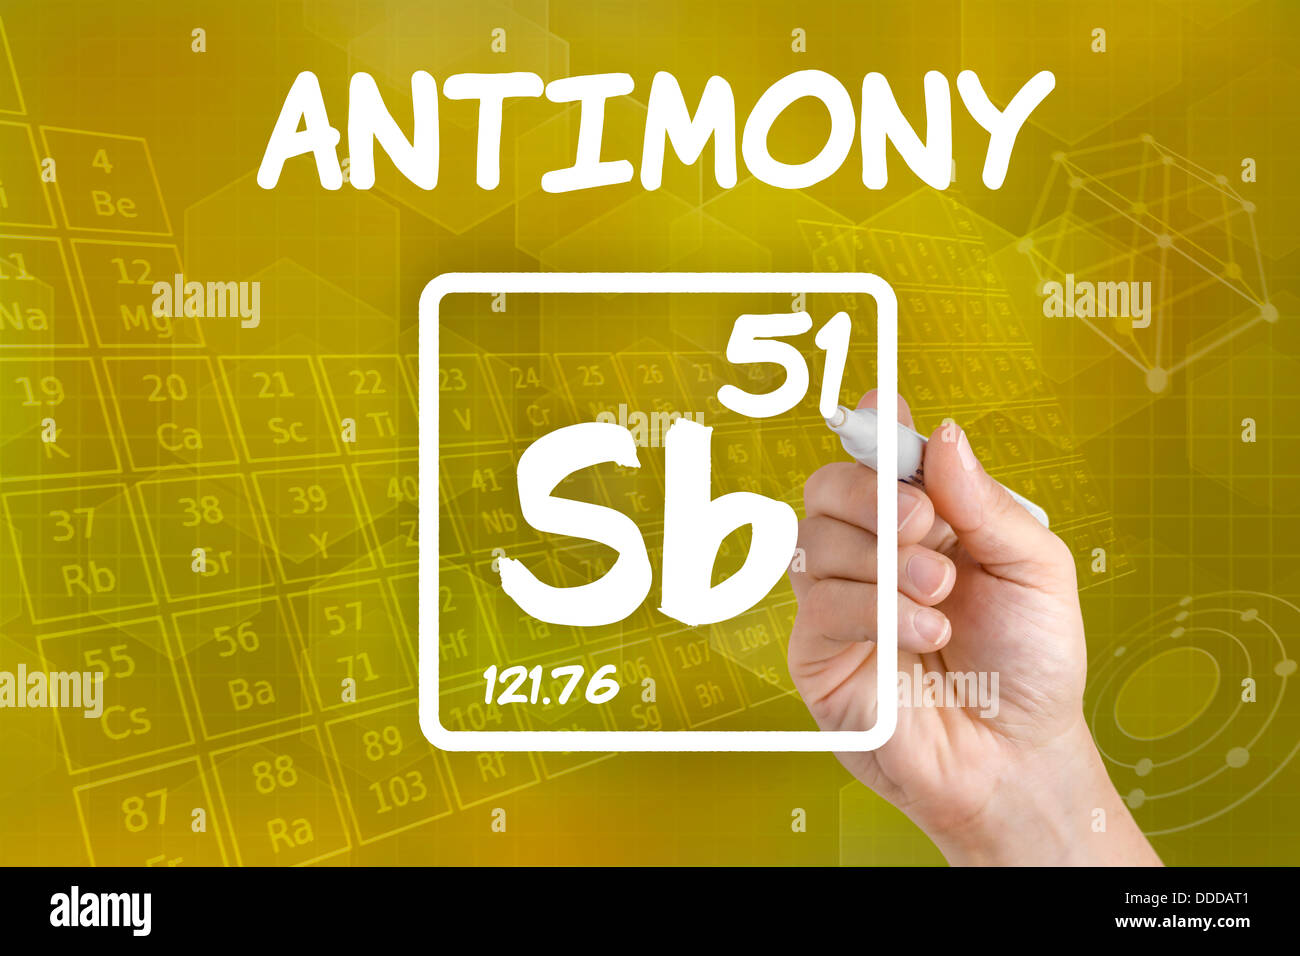 Symbol for the chemical element antimony stock photo 59915521 alamy symbol for the chemical element antimony biocorpaavc Images